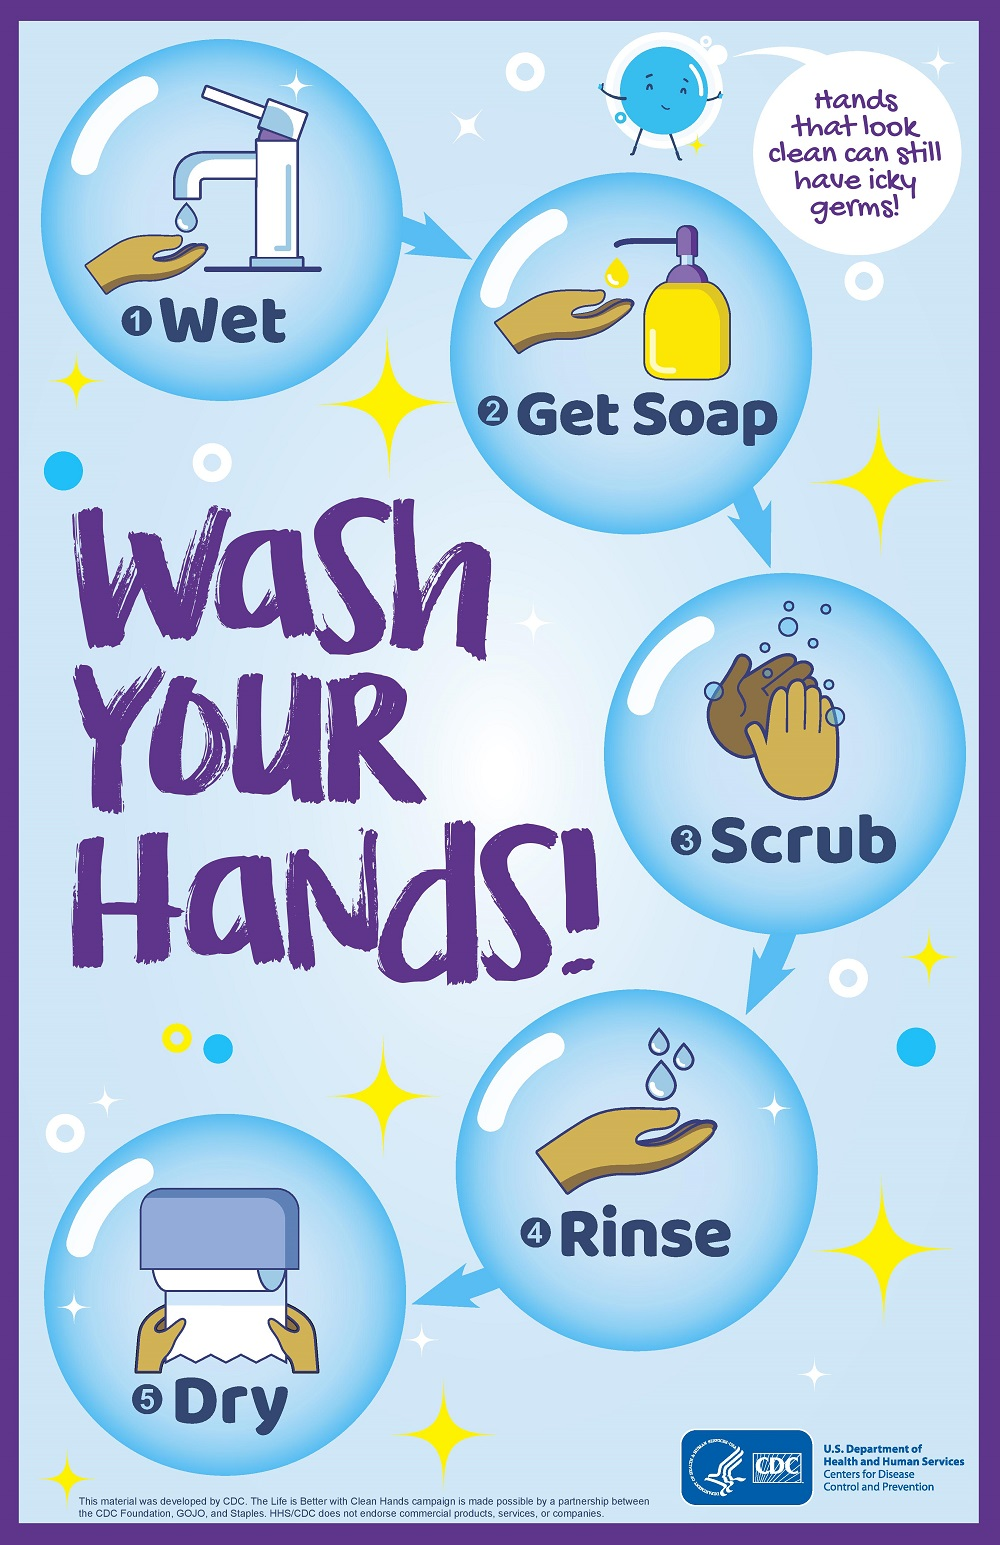 Hand washing guidelines by the Centre for Disease and Control (CDC)